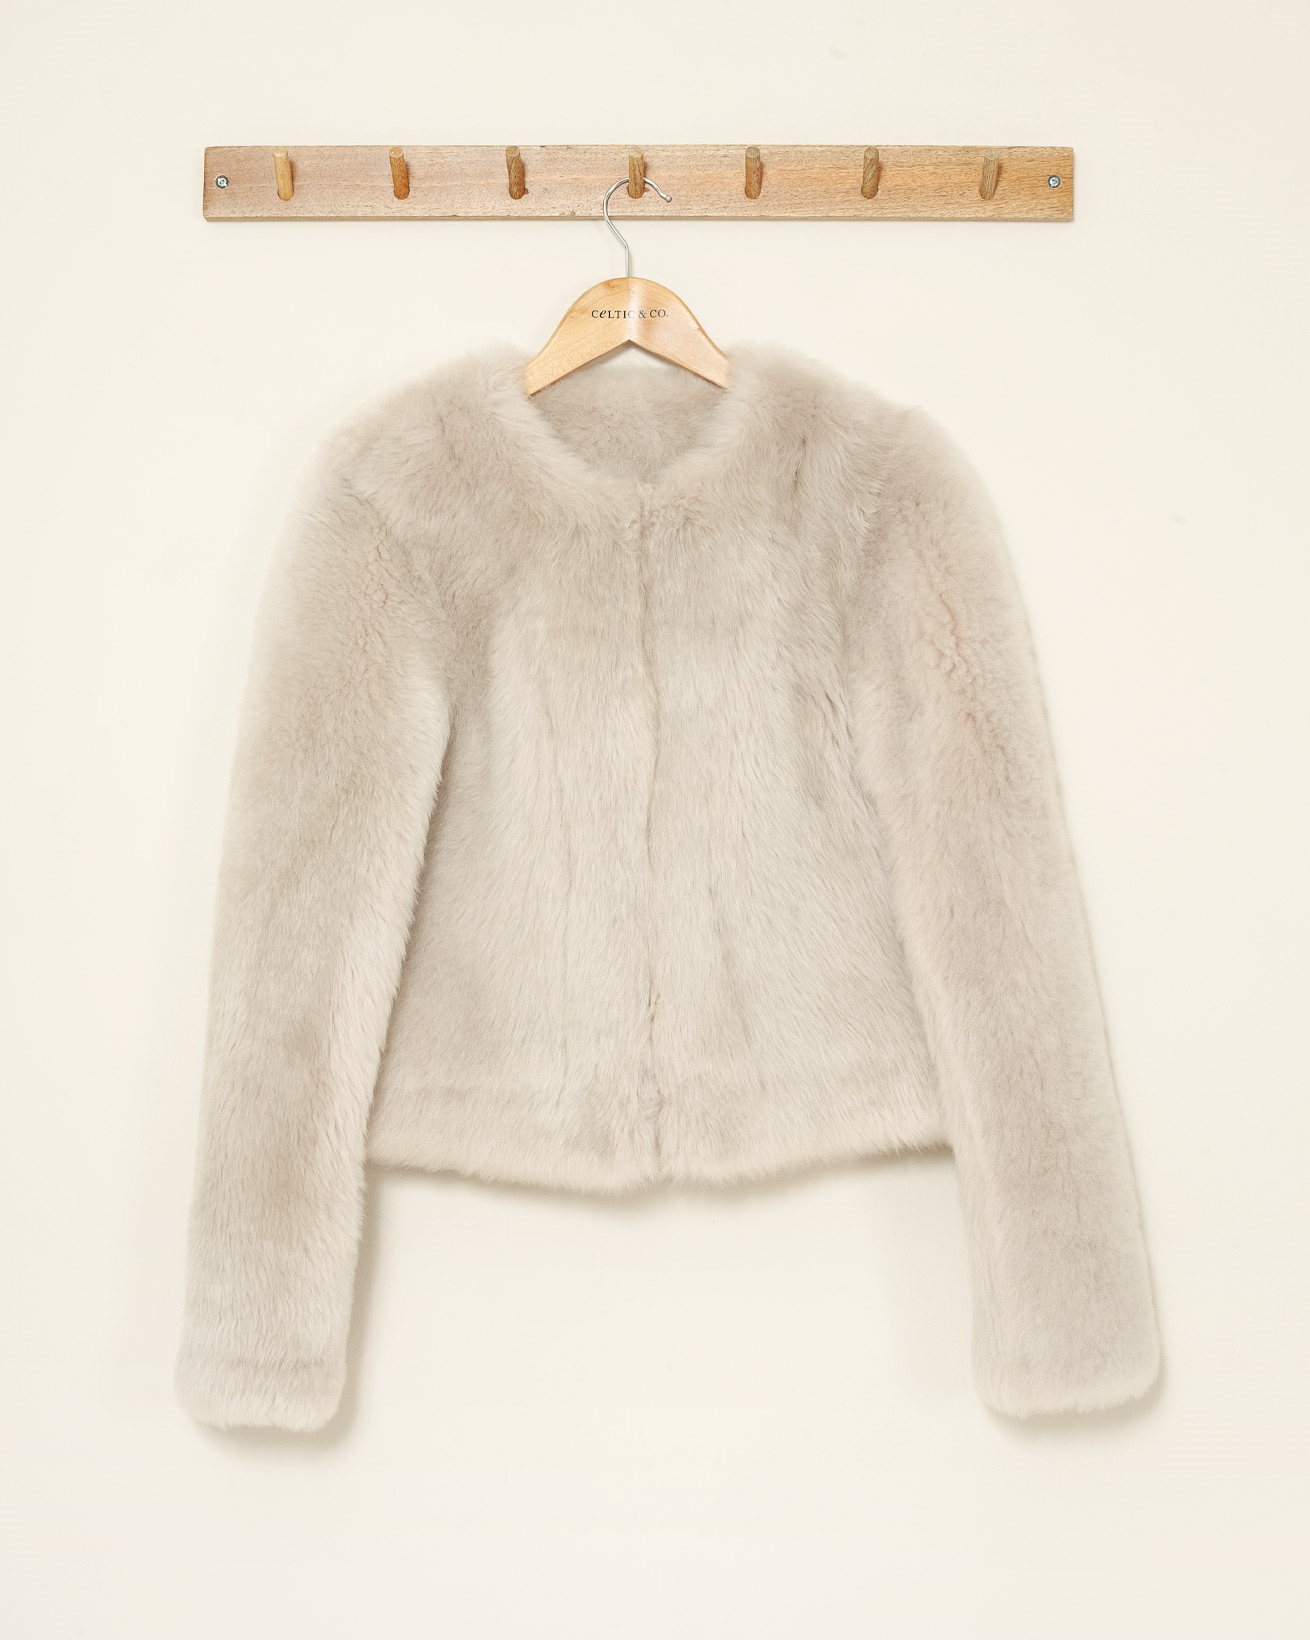 Teddy Collarless Short Jacket - Small - Ivory - 1119